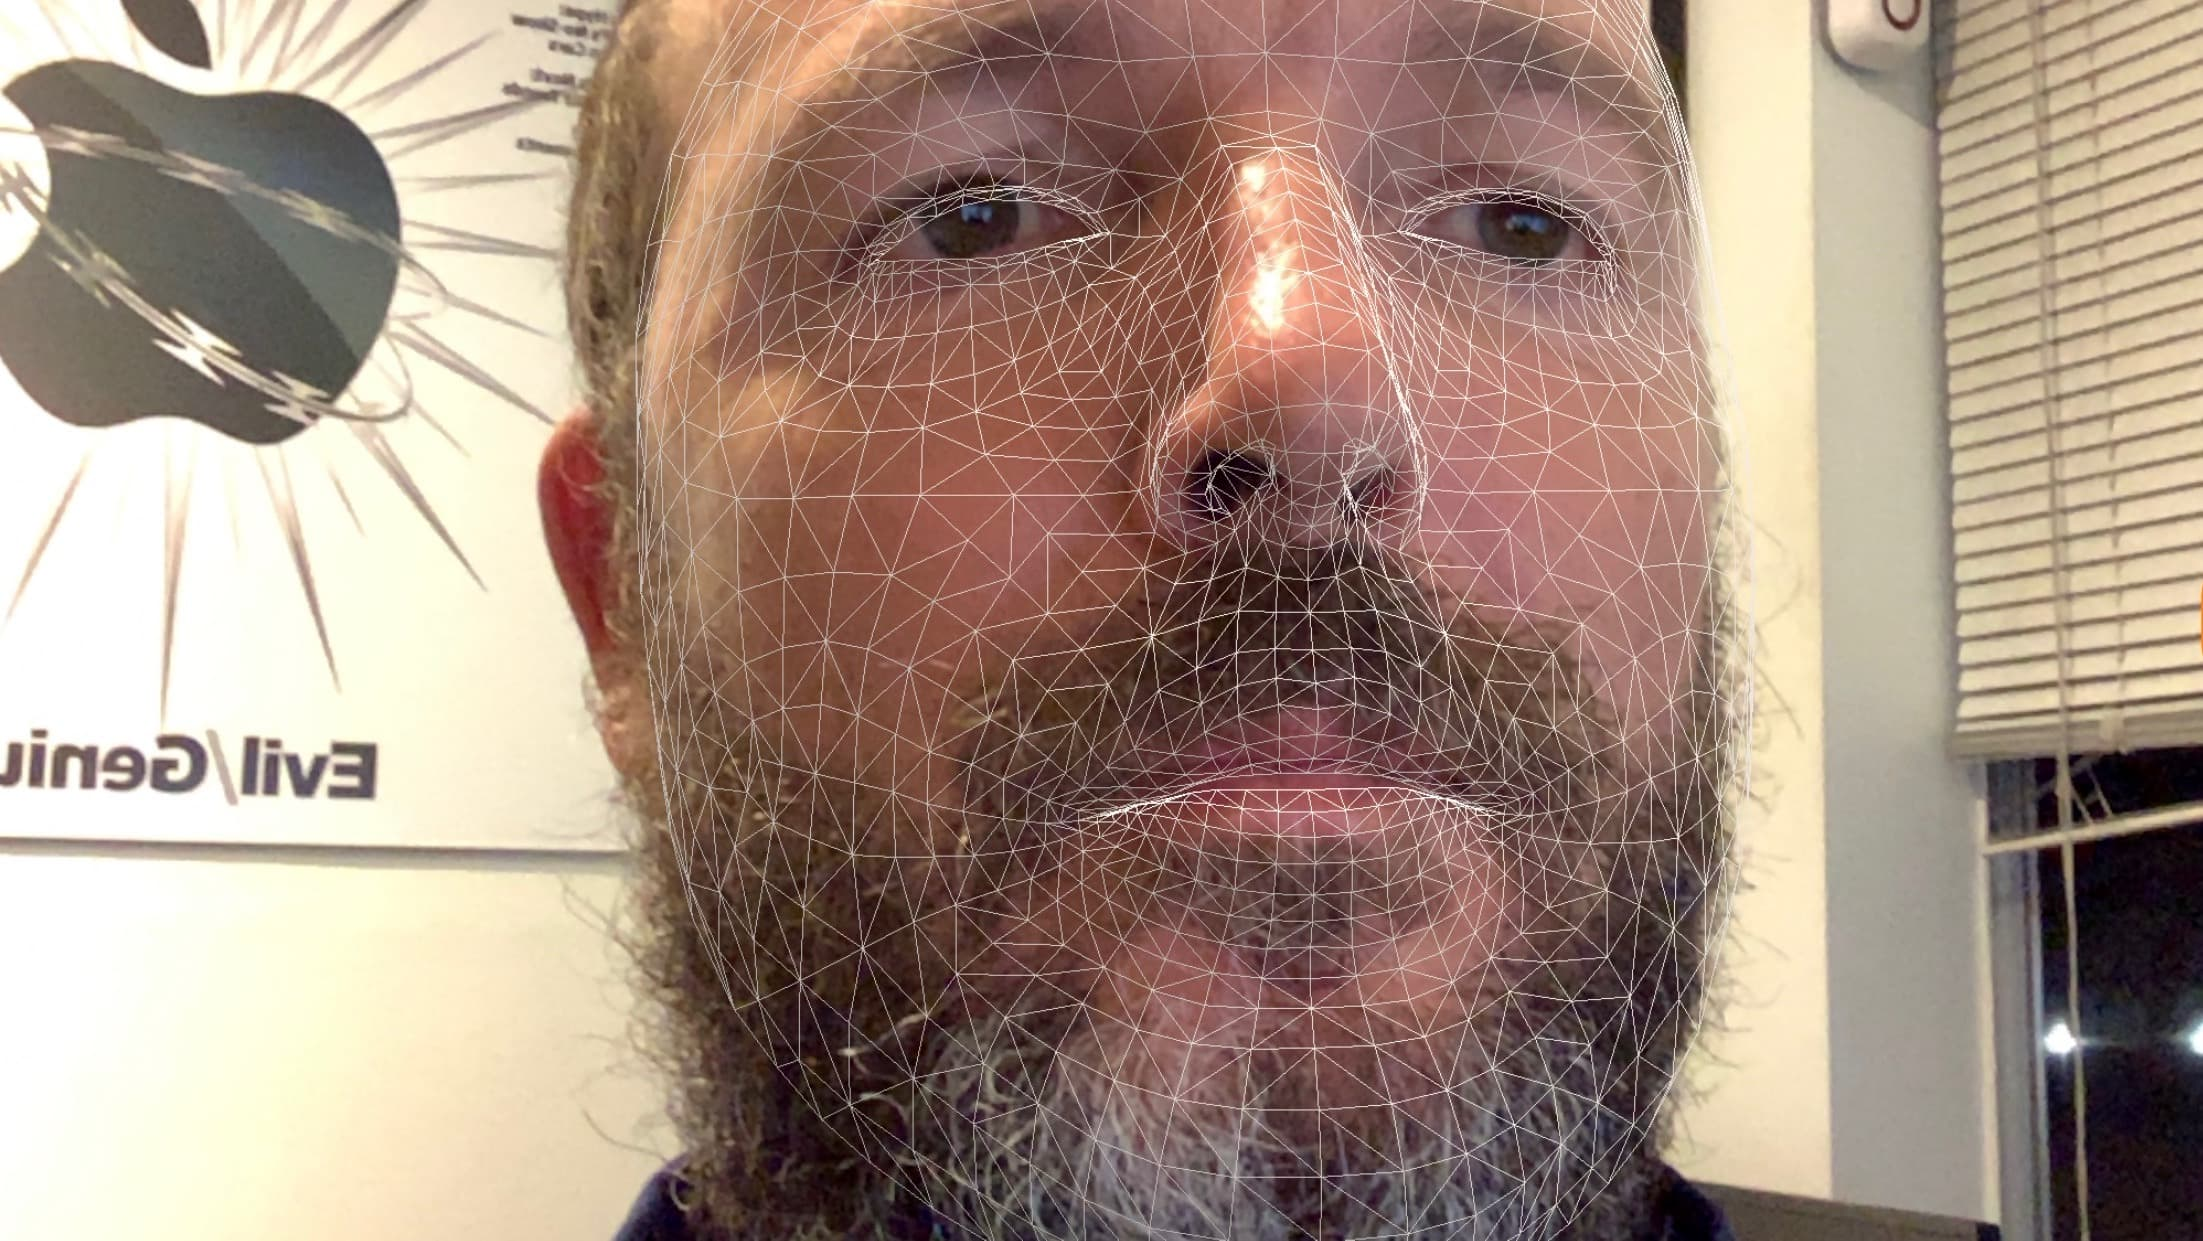 FaceID scan